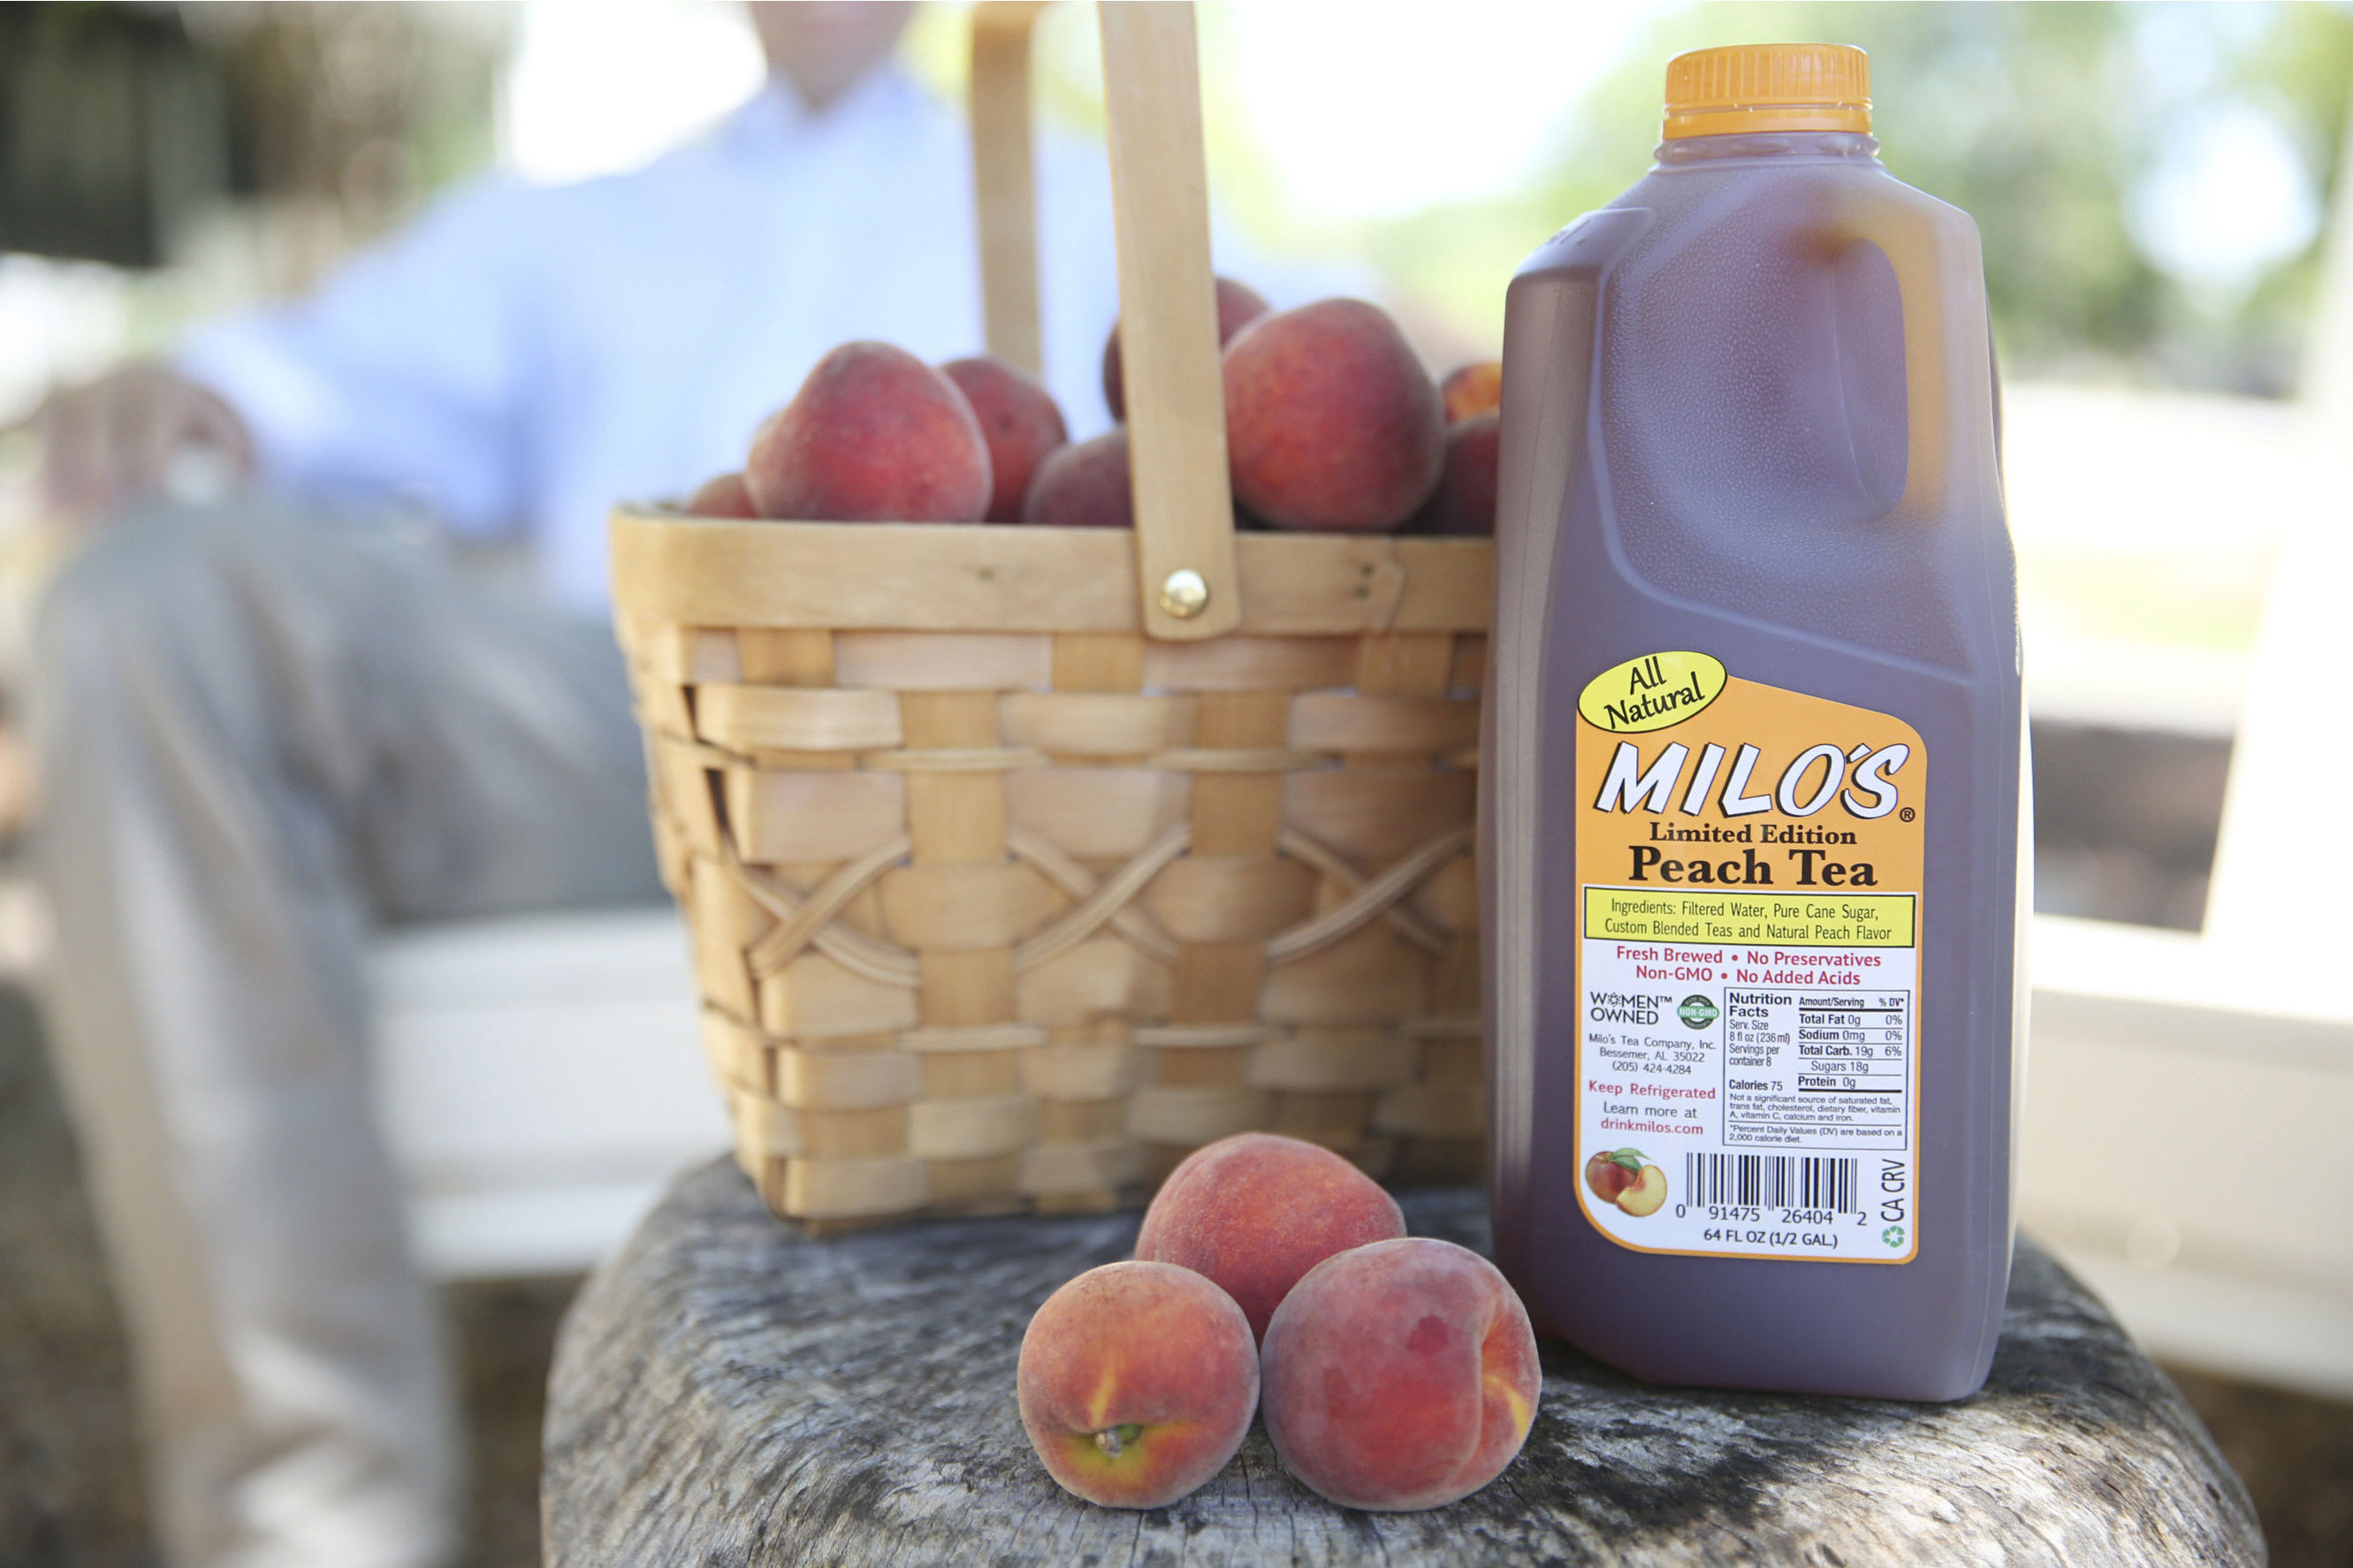 Cool Off This Summer with Milo's New Peach Iced Tea